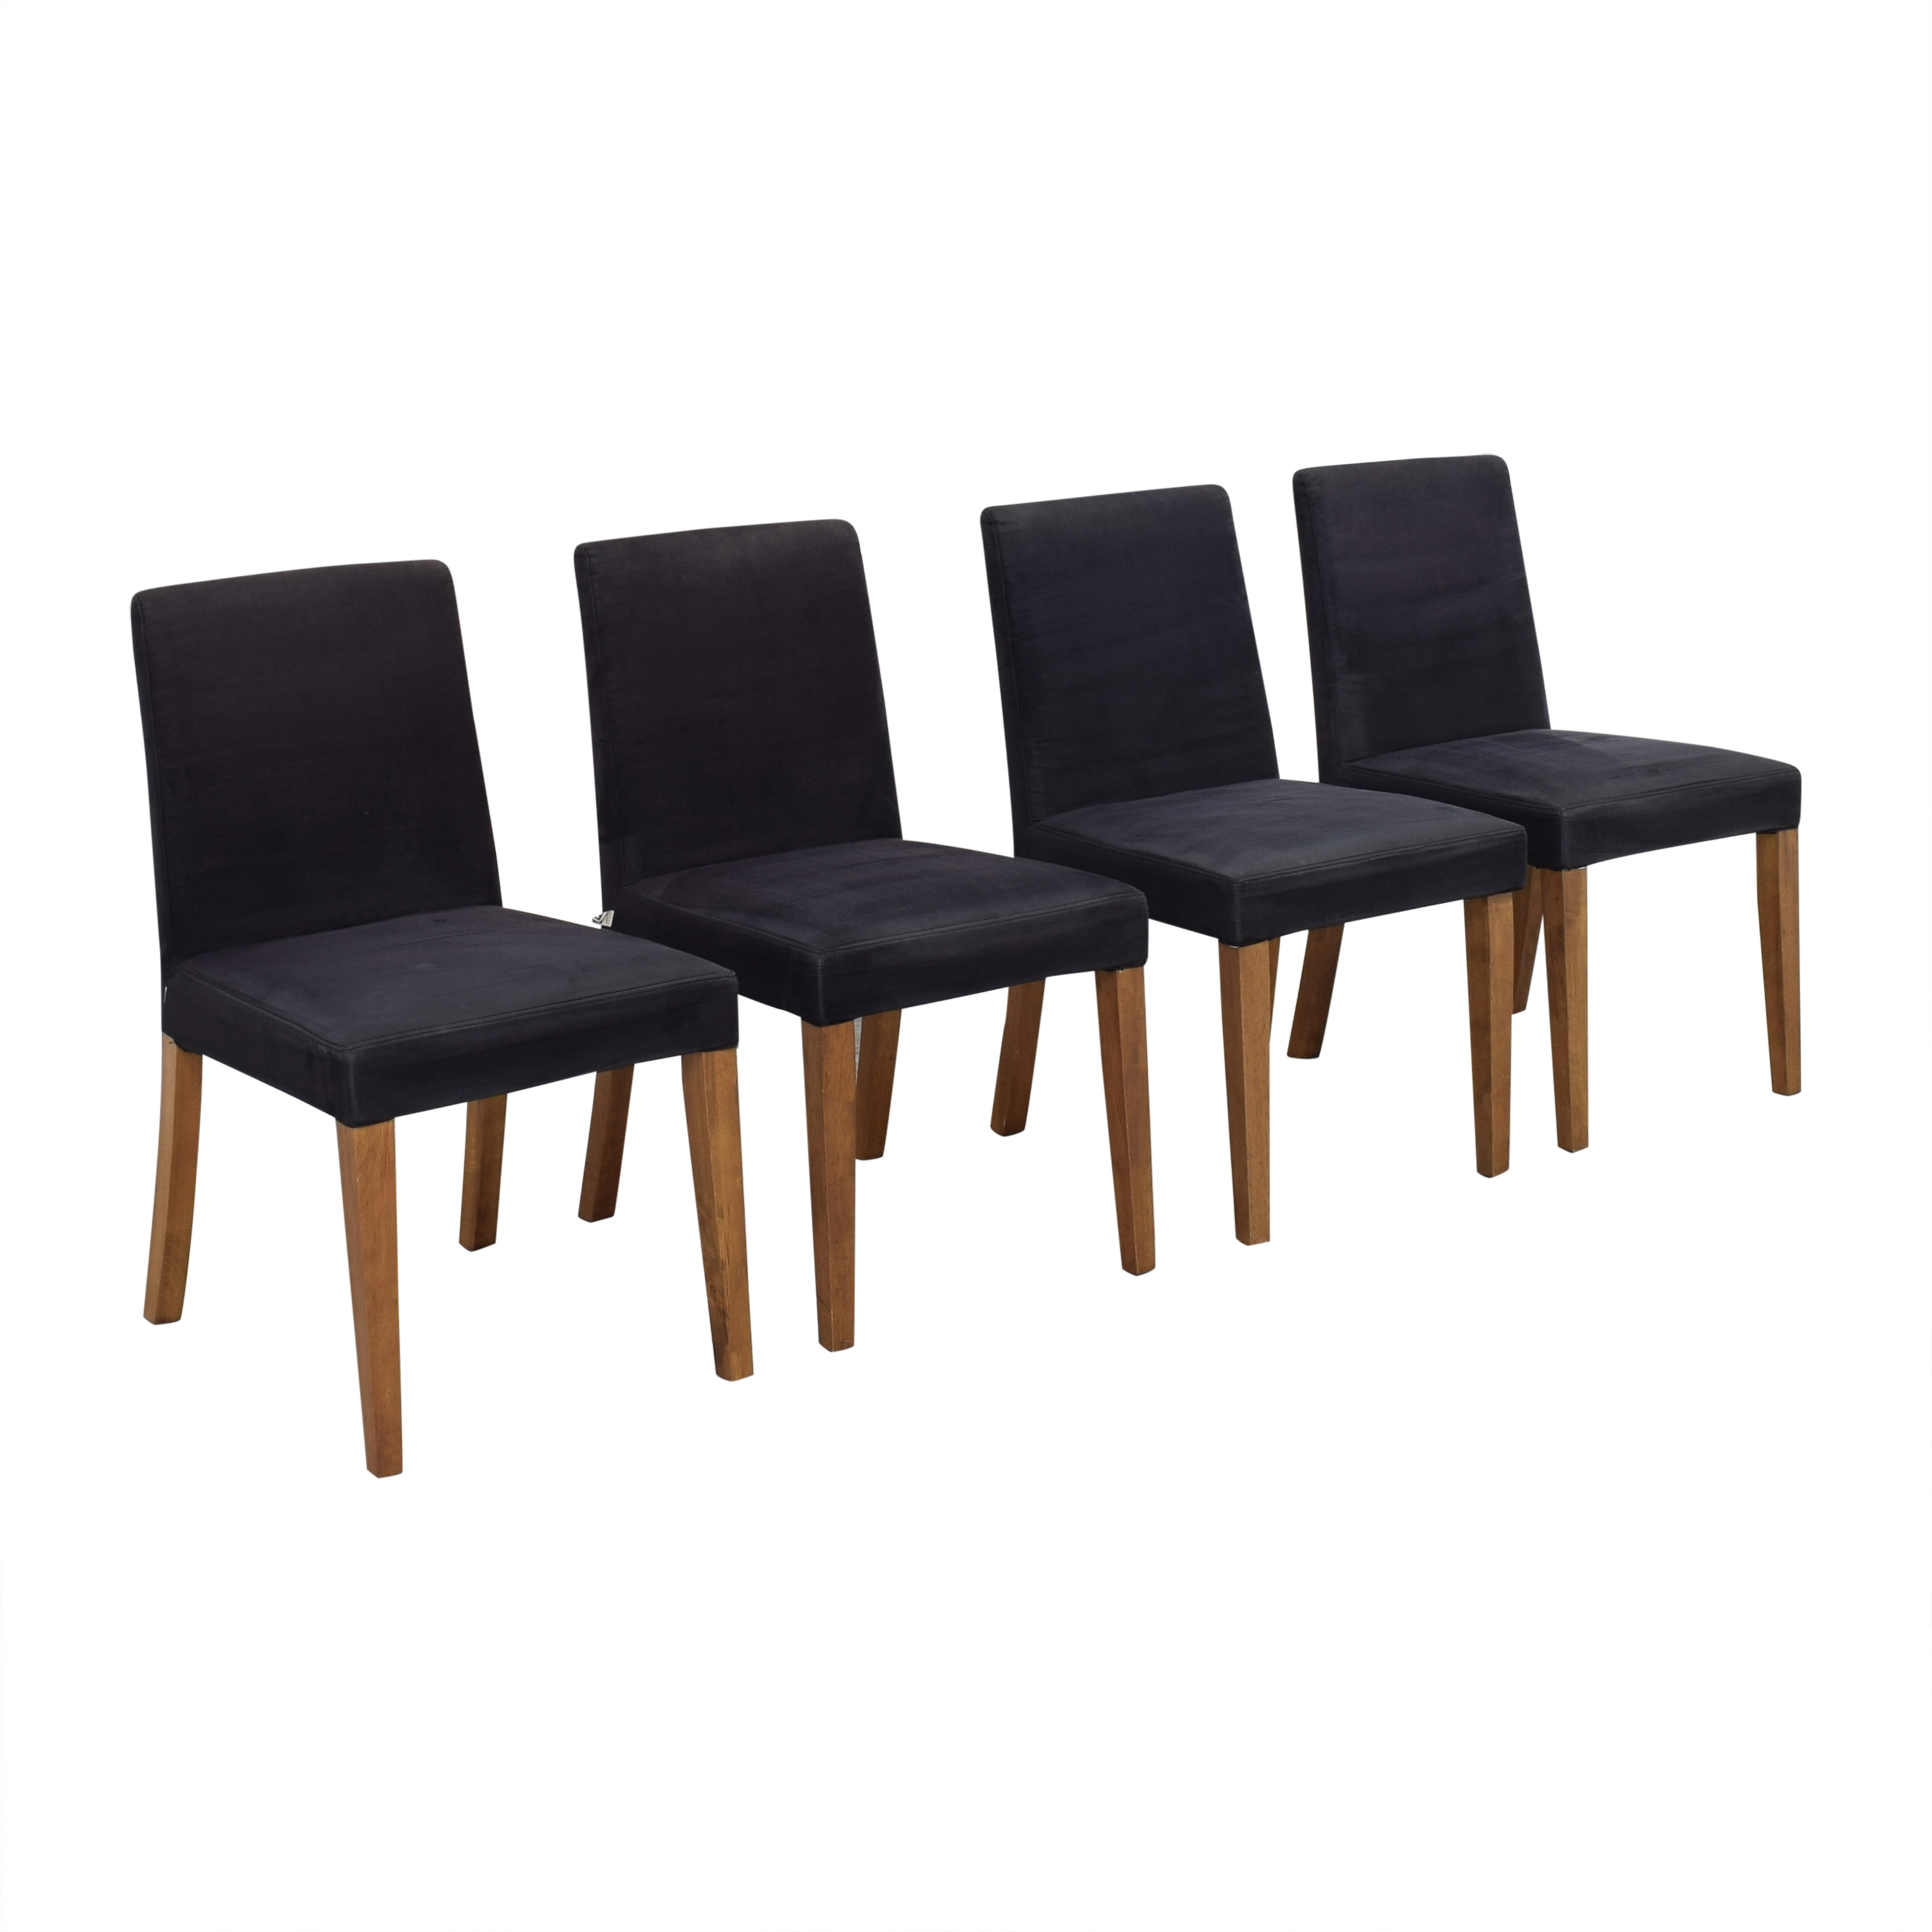 BoConcept BoConcept Cantono Upholstered Chairs discount